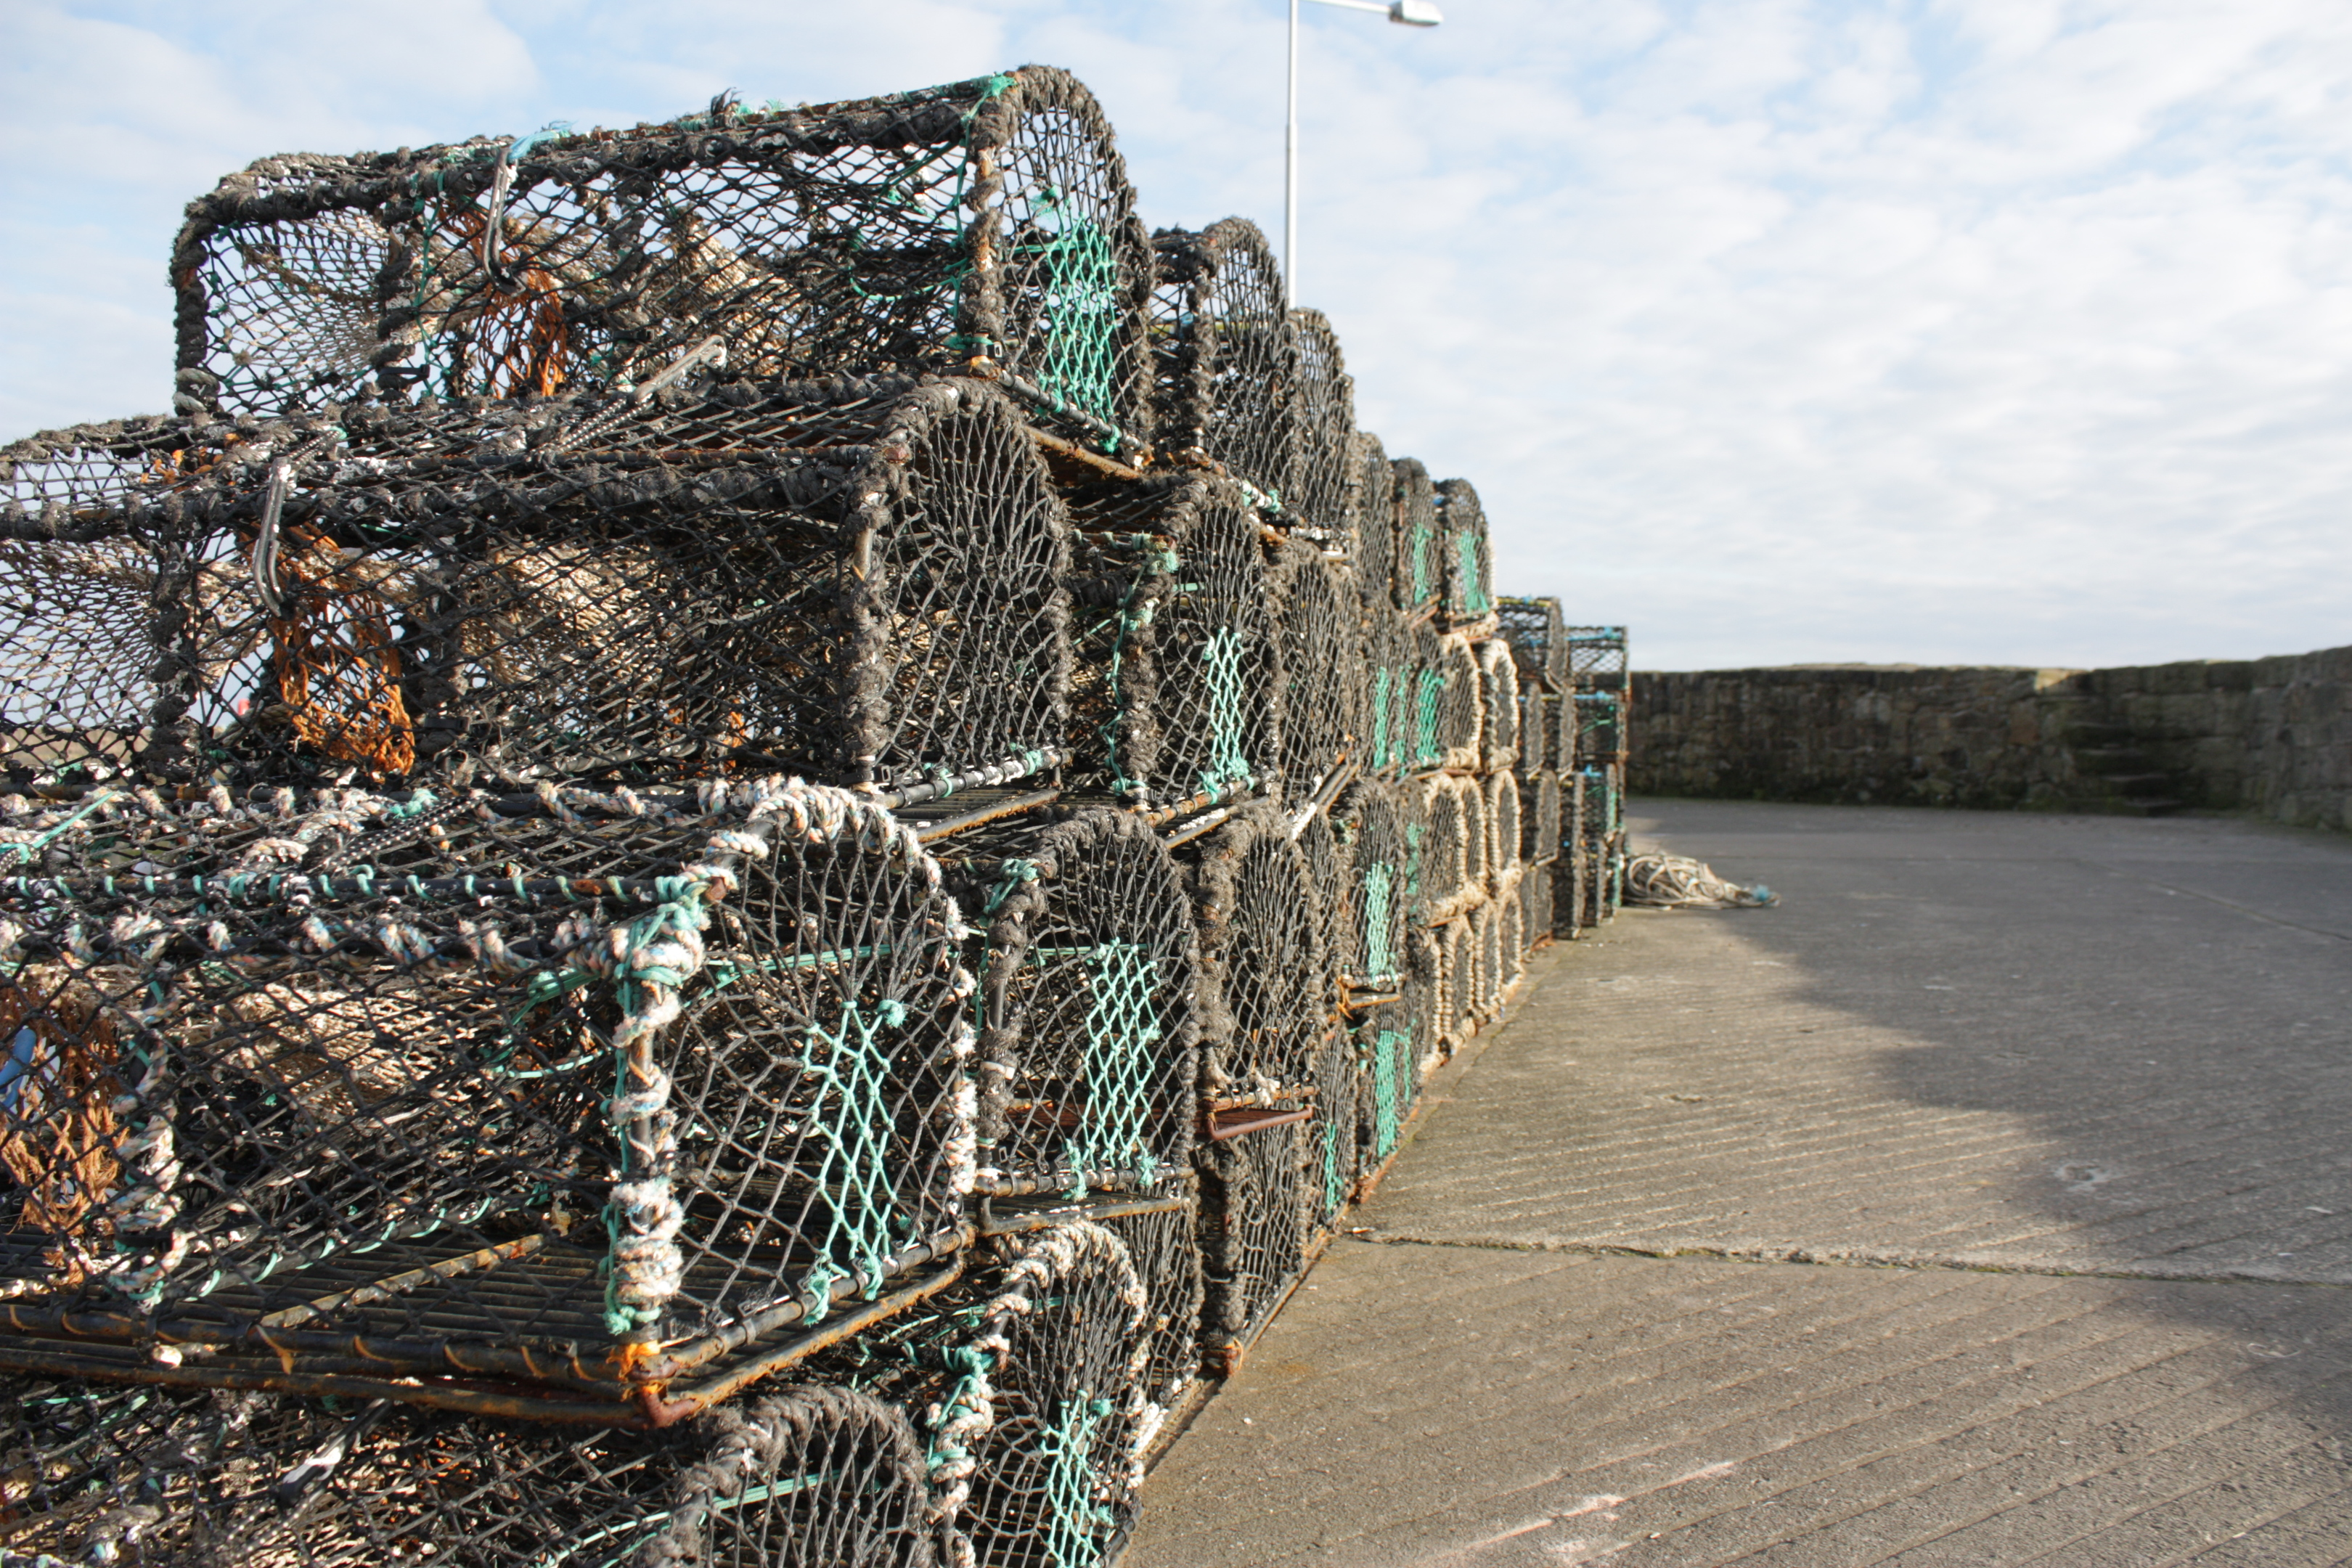 Lobster creels, similar to those pictured, were taken from Stonehaven harbour.